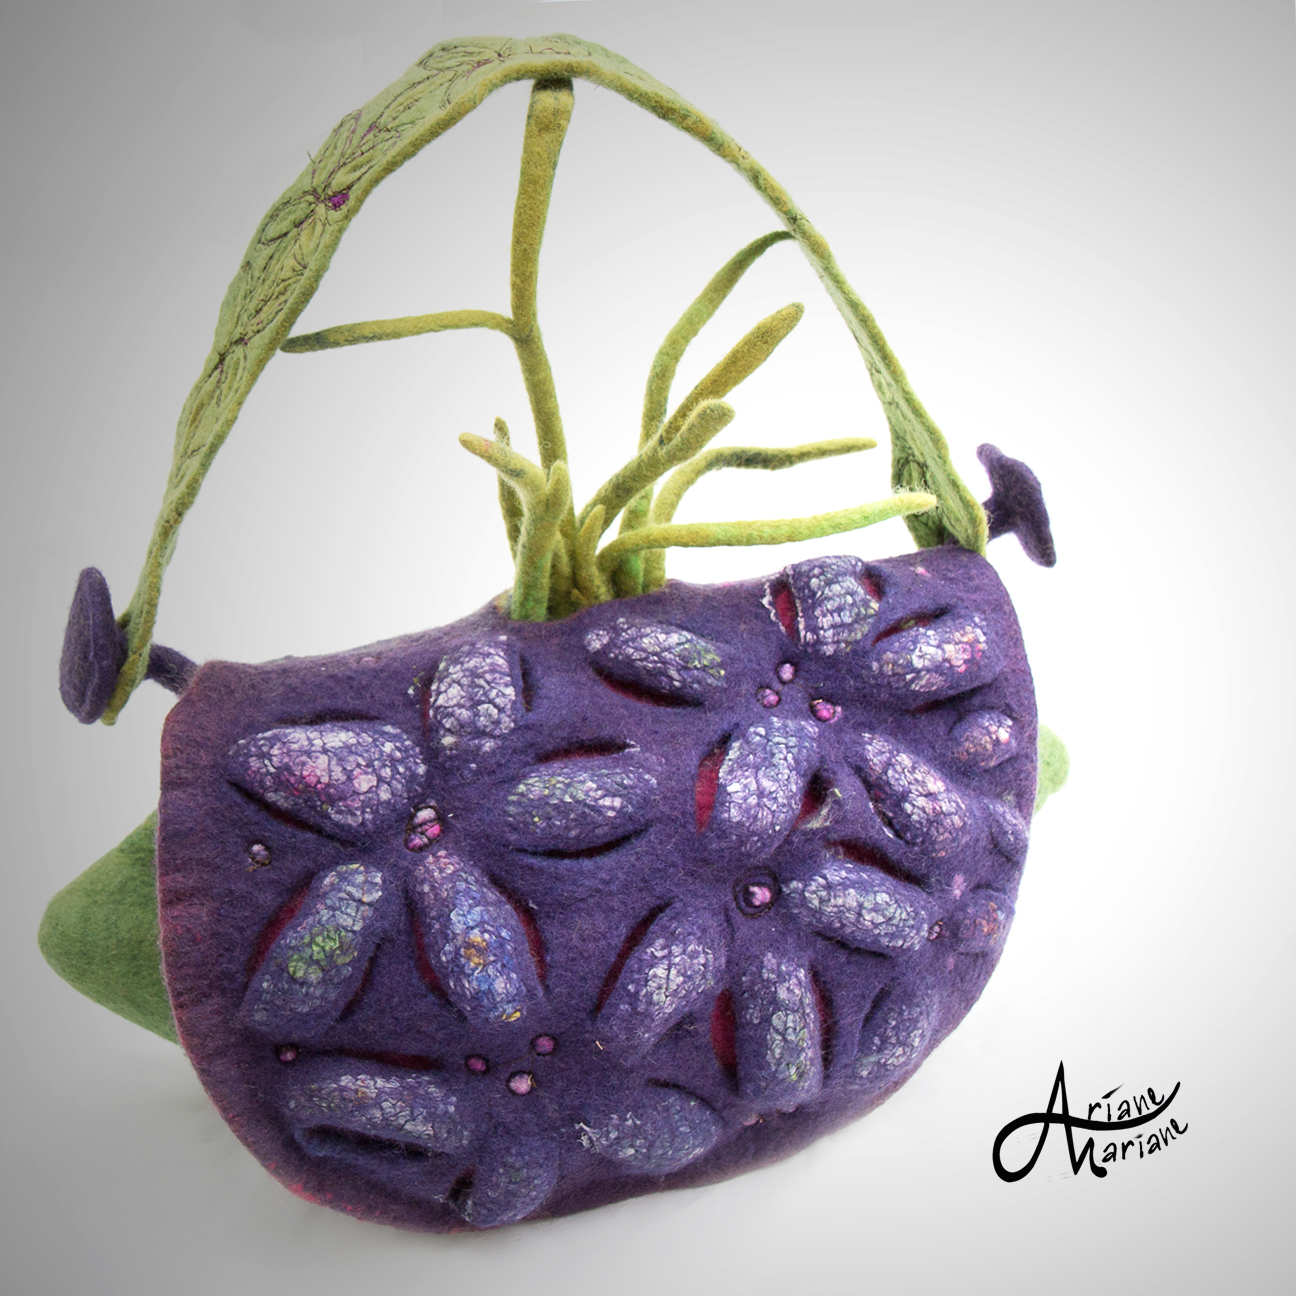 sculptural-felt-art-bag-ariane-mariane.jpg